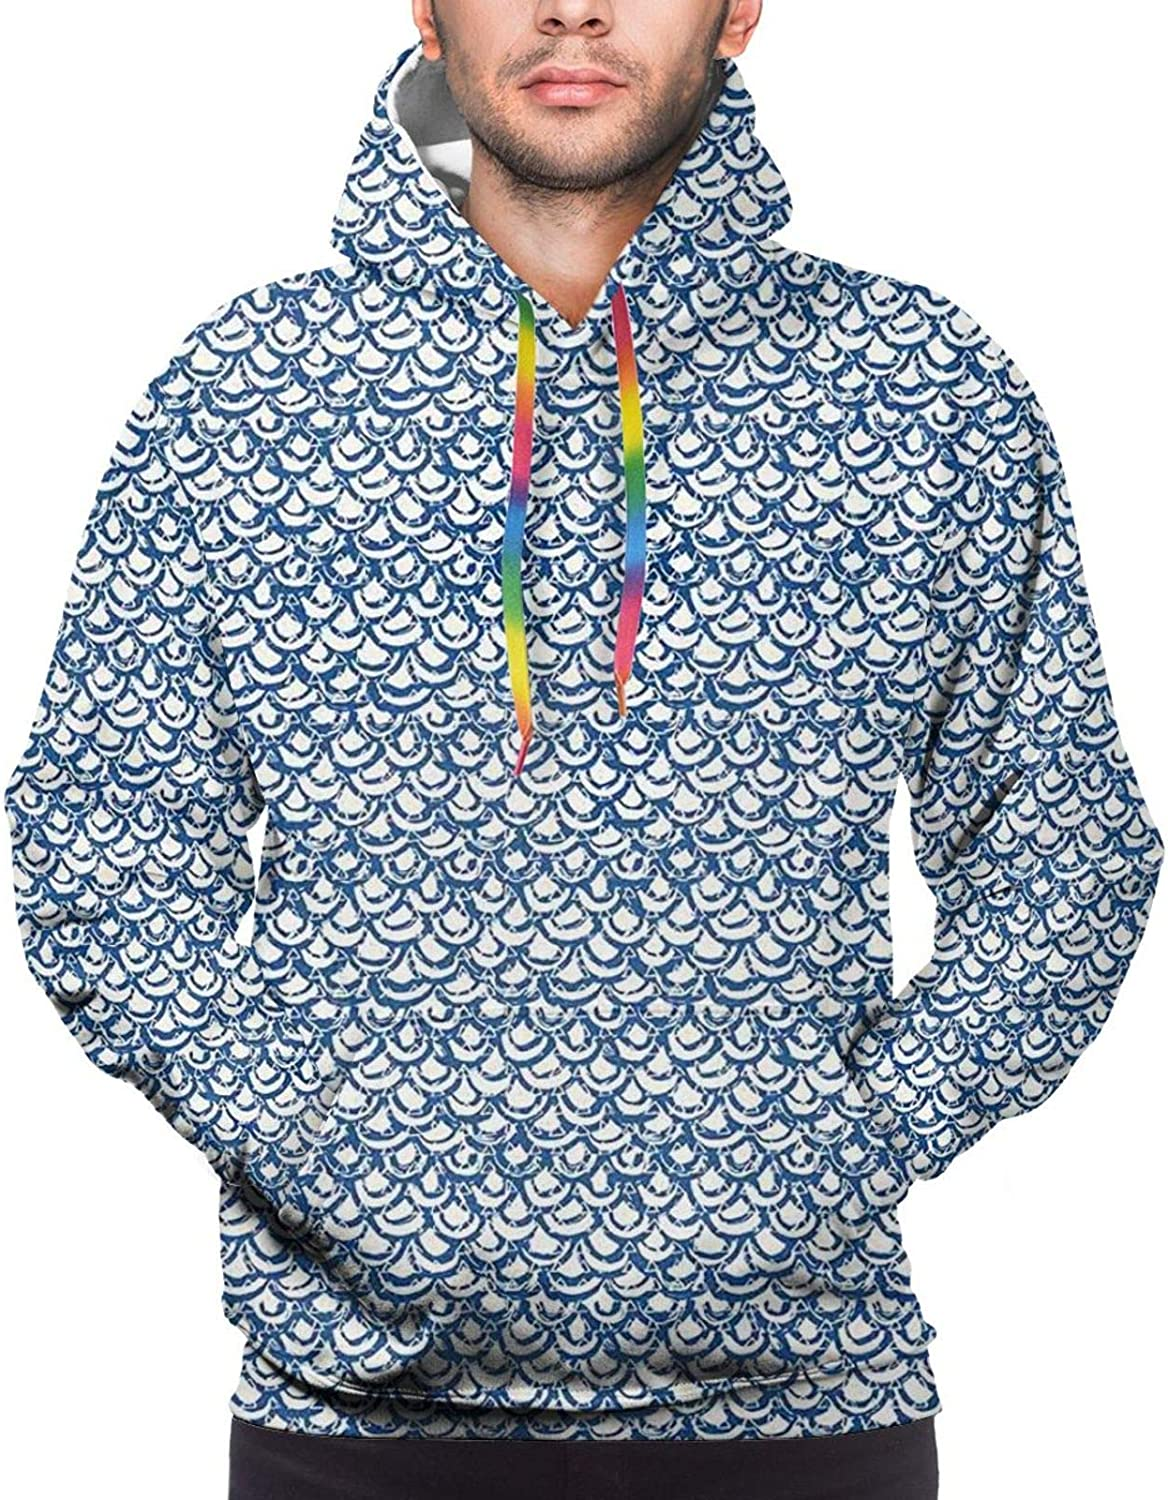 Men's Hoodies Sweatshirts,Hand Drawn Style Indonesian Batik Pattern with Curves and Small Triangles